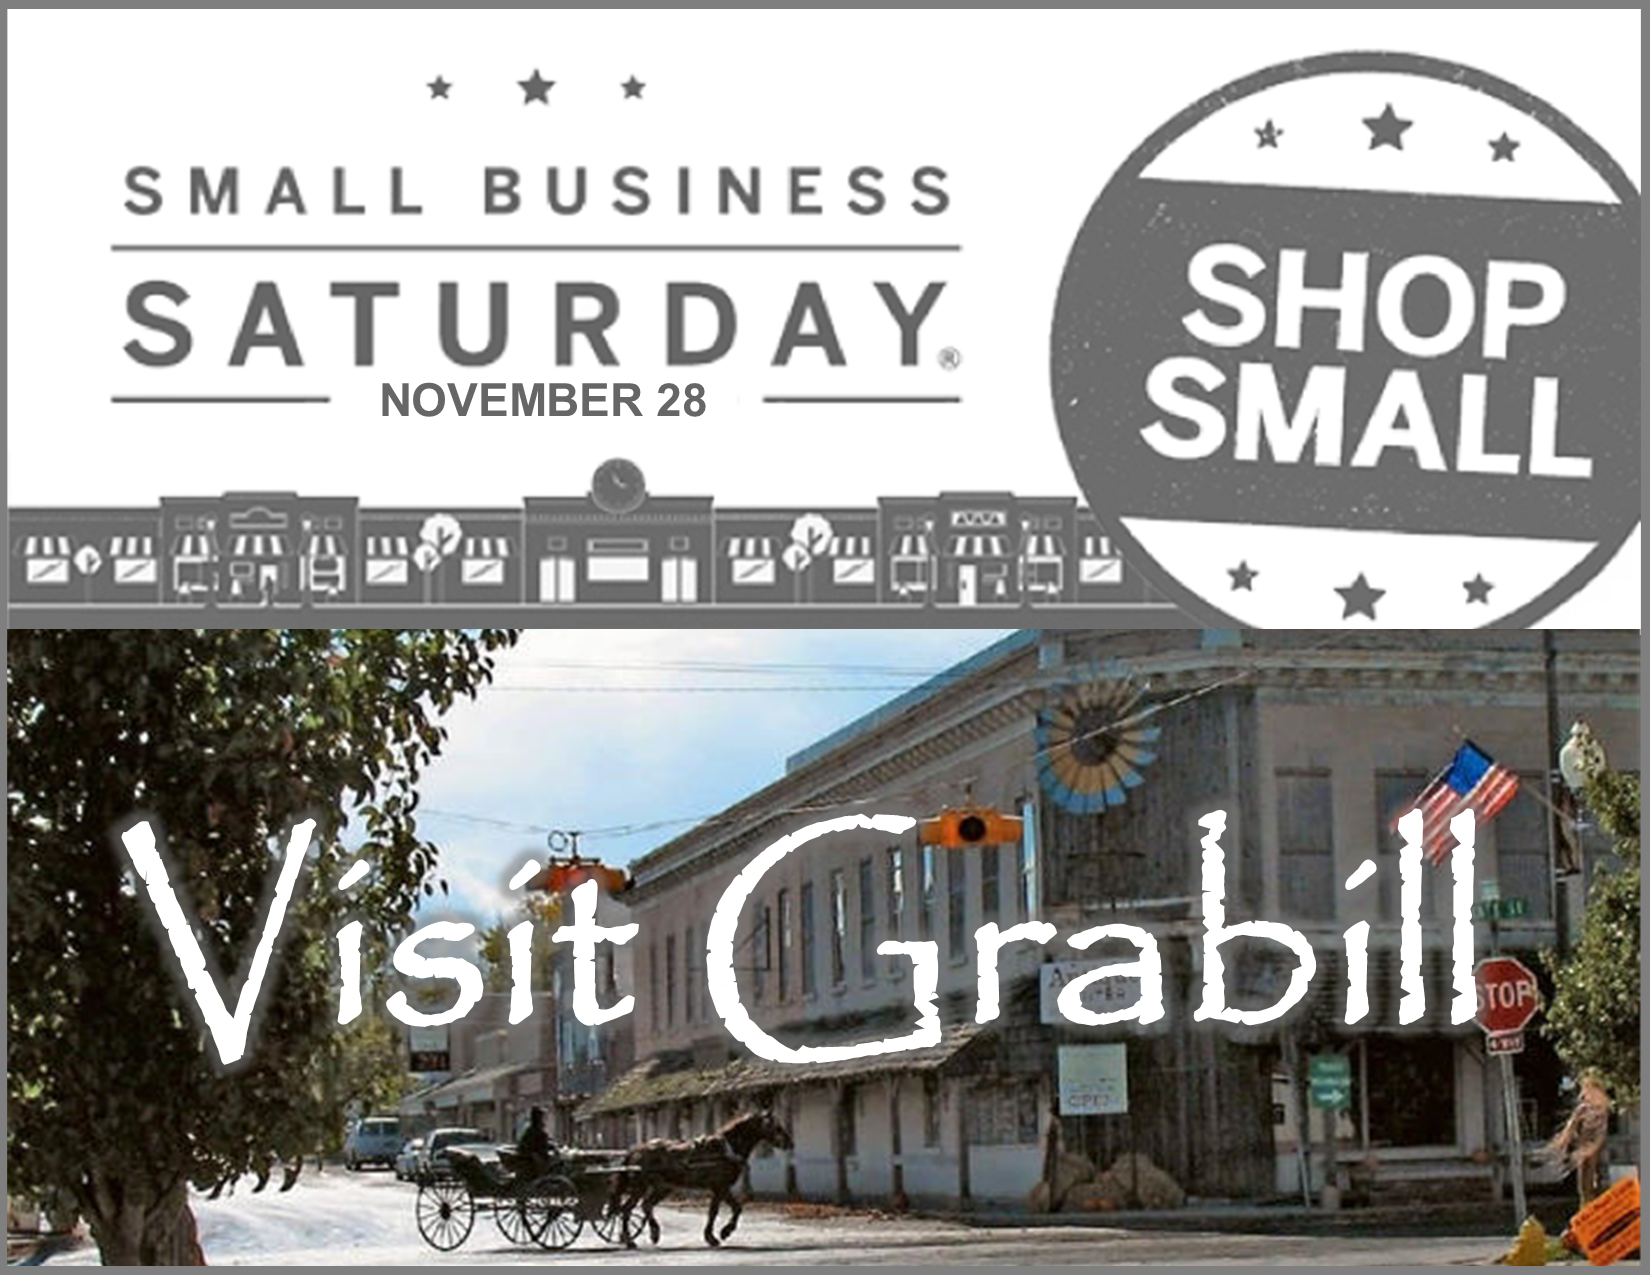 Shop Small Business Saturday Grabill Indiana